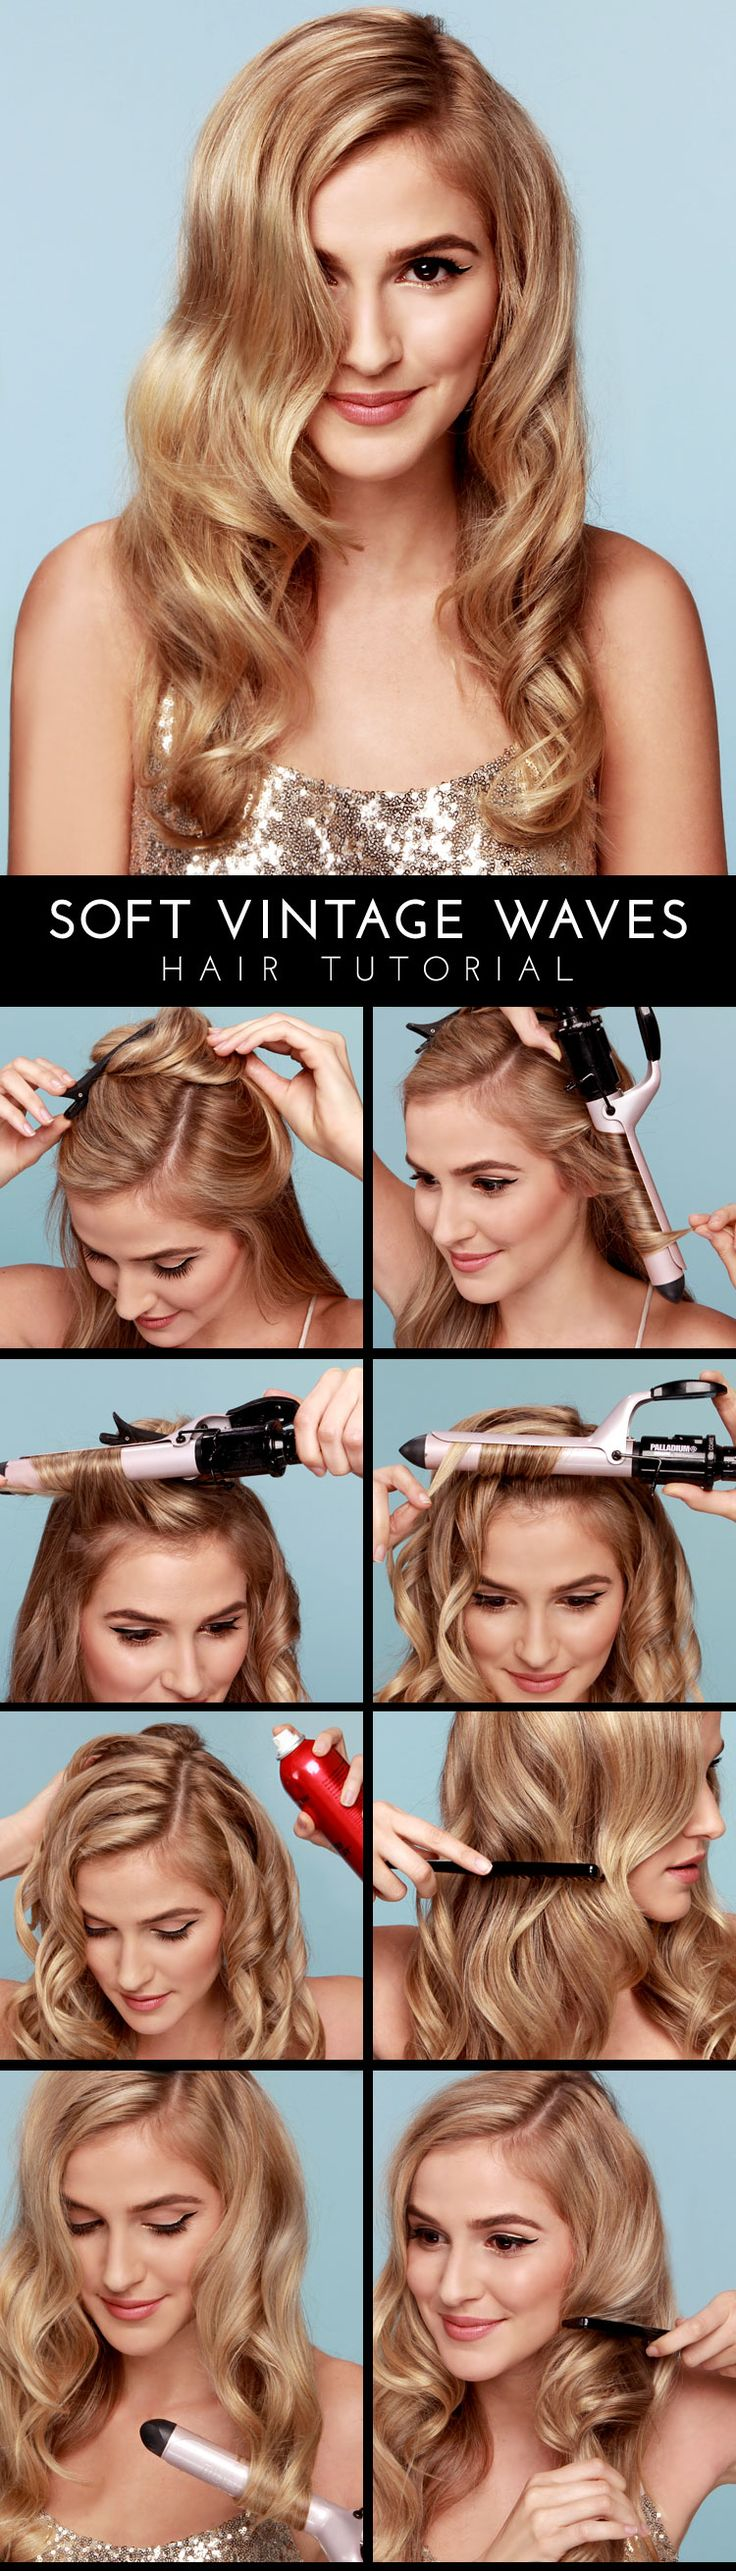 Soft vintage waves - perfect for around the holidays!